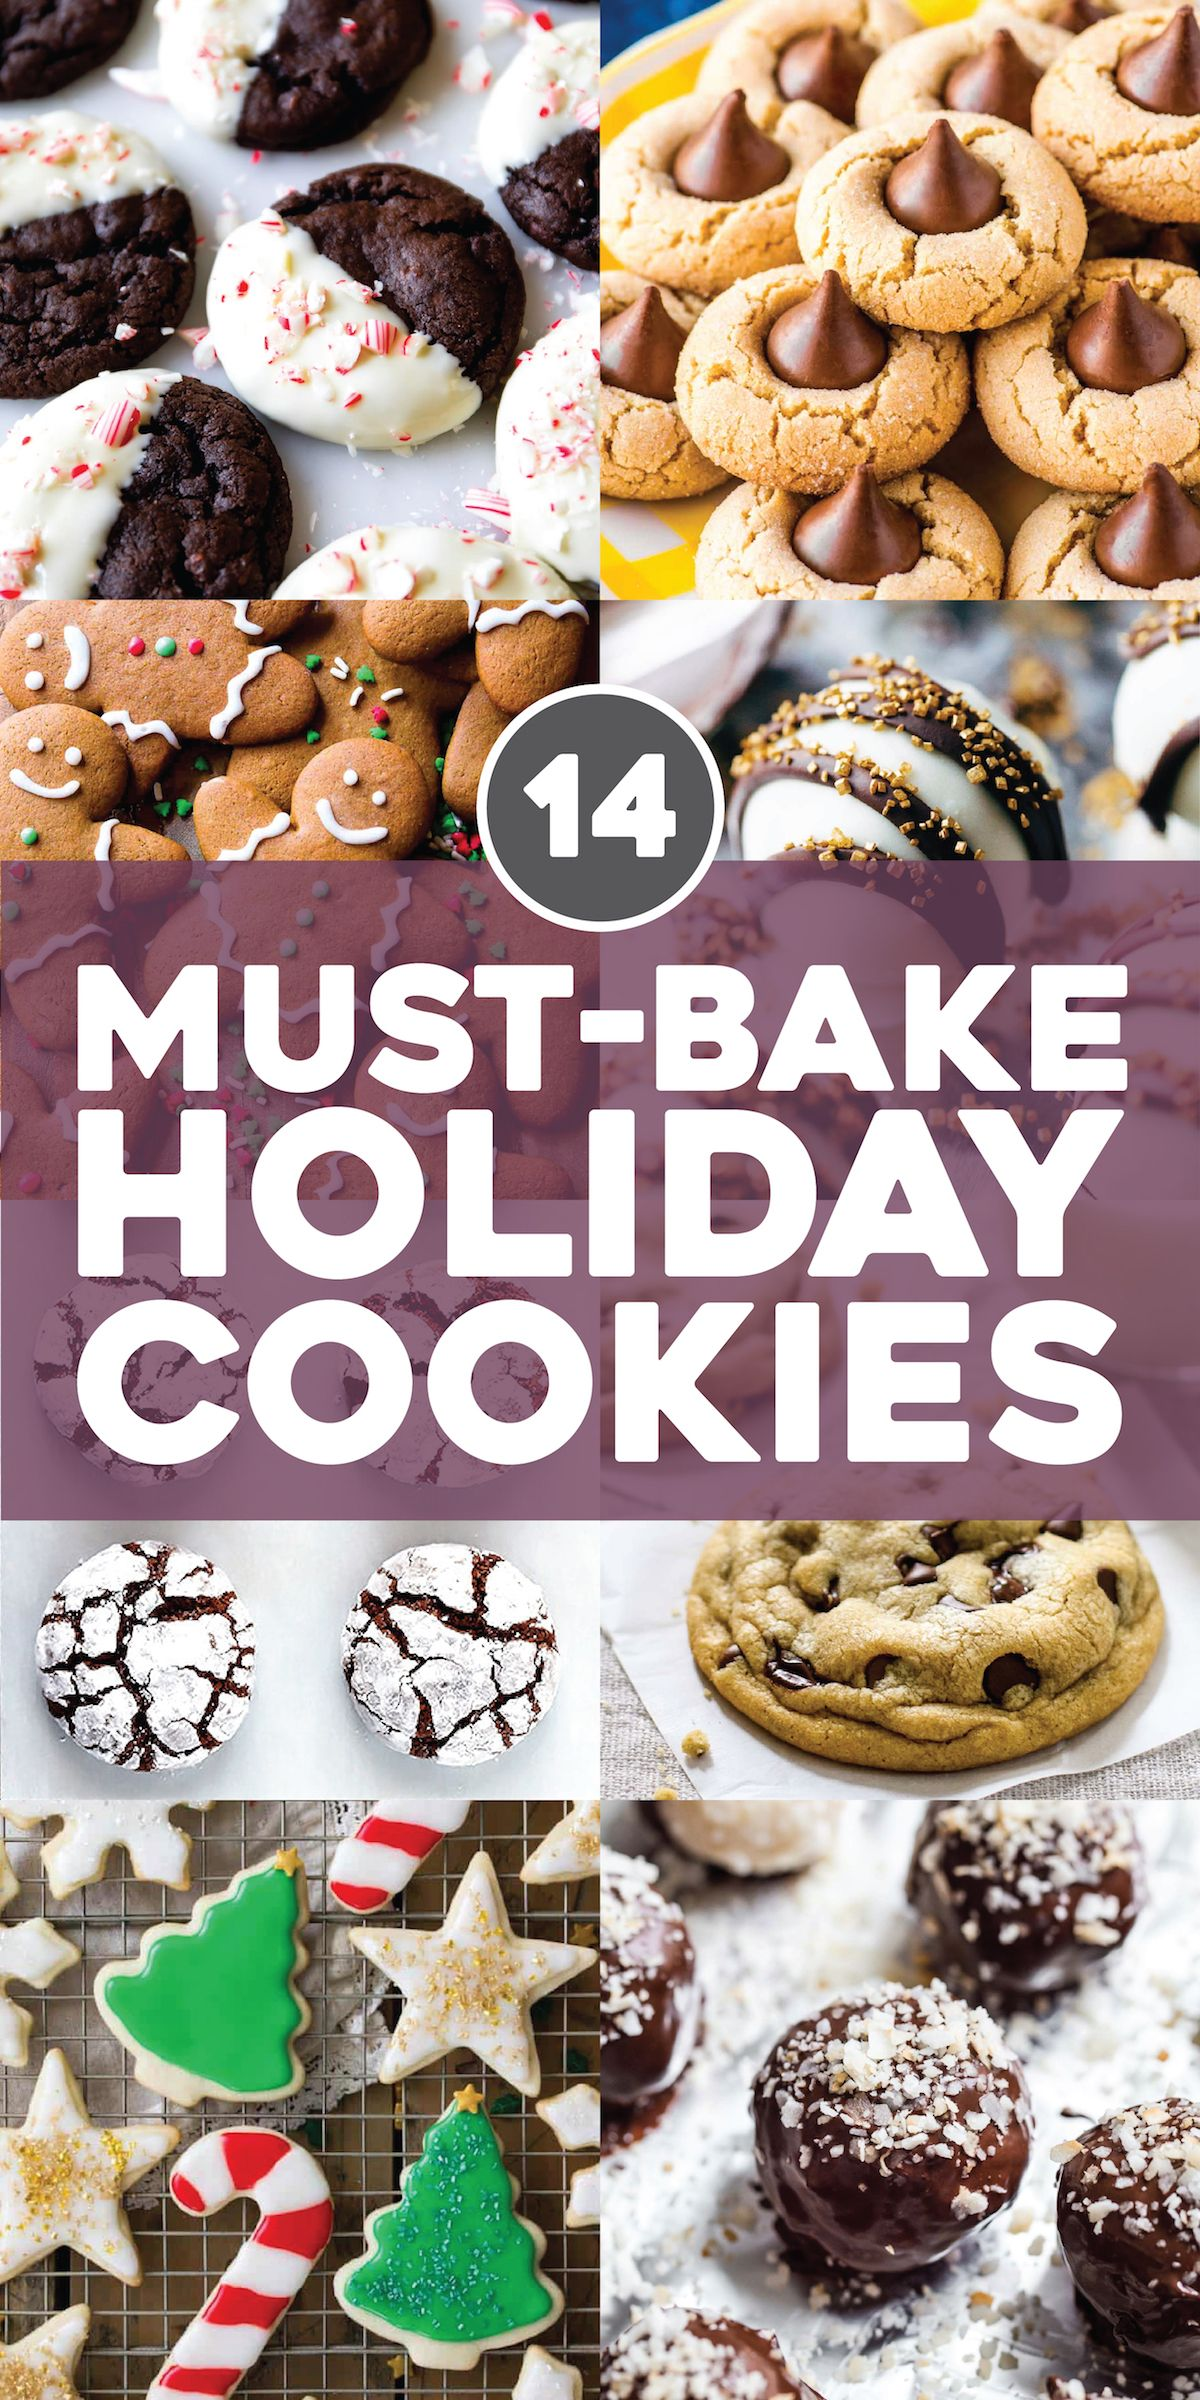 14 Must-Bake Holiday Cookie Recipes #holidaytreats